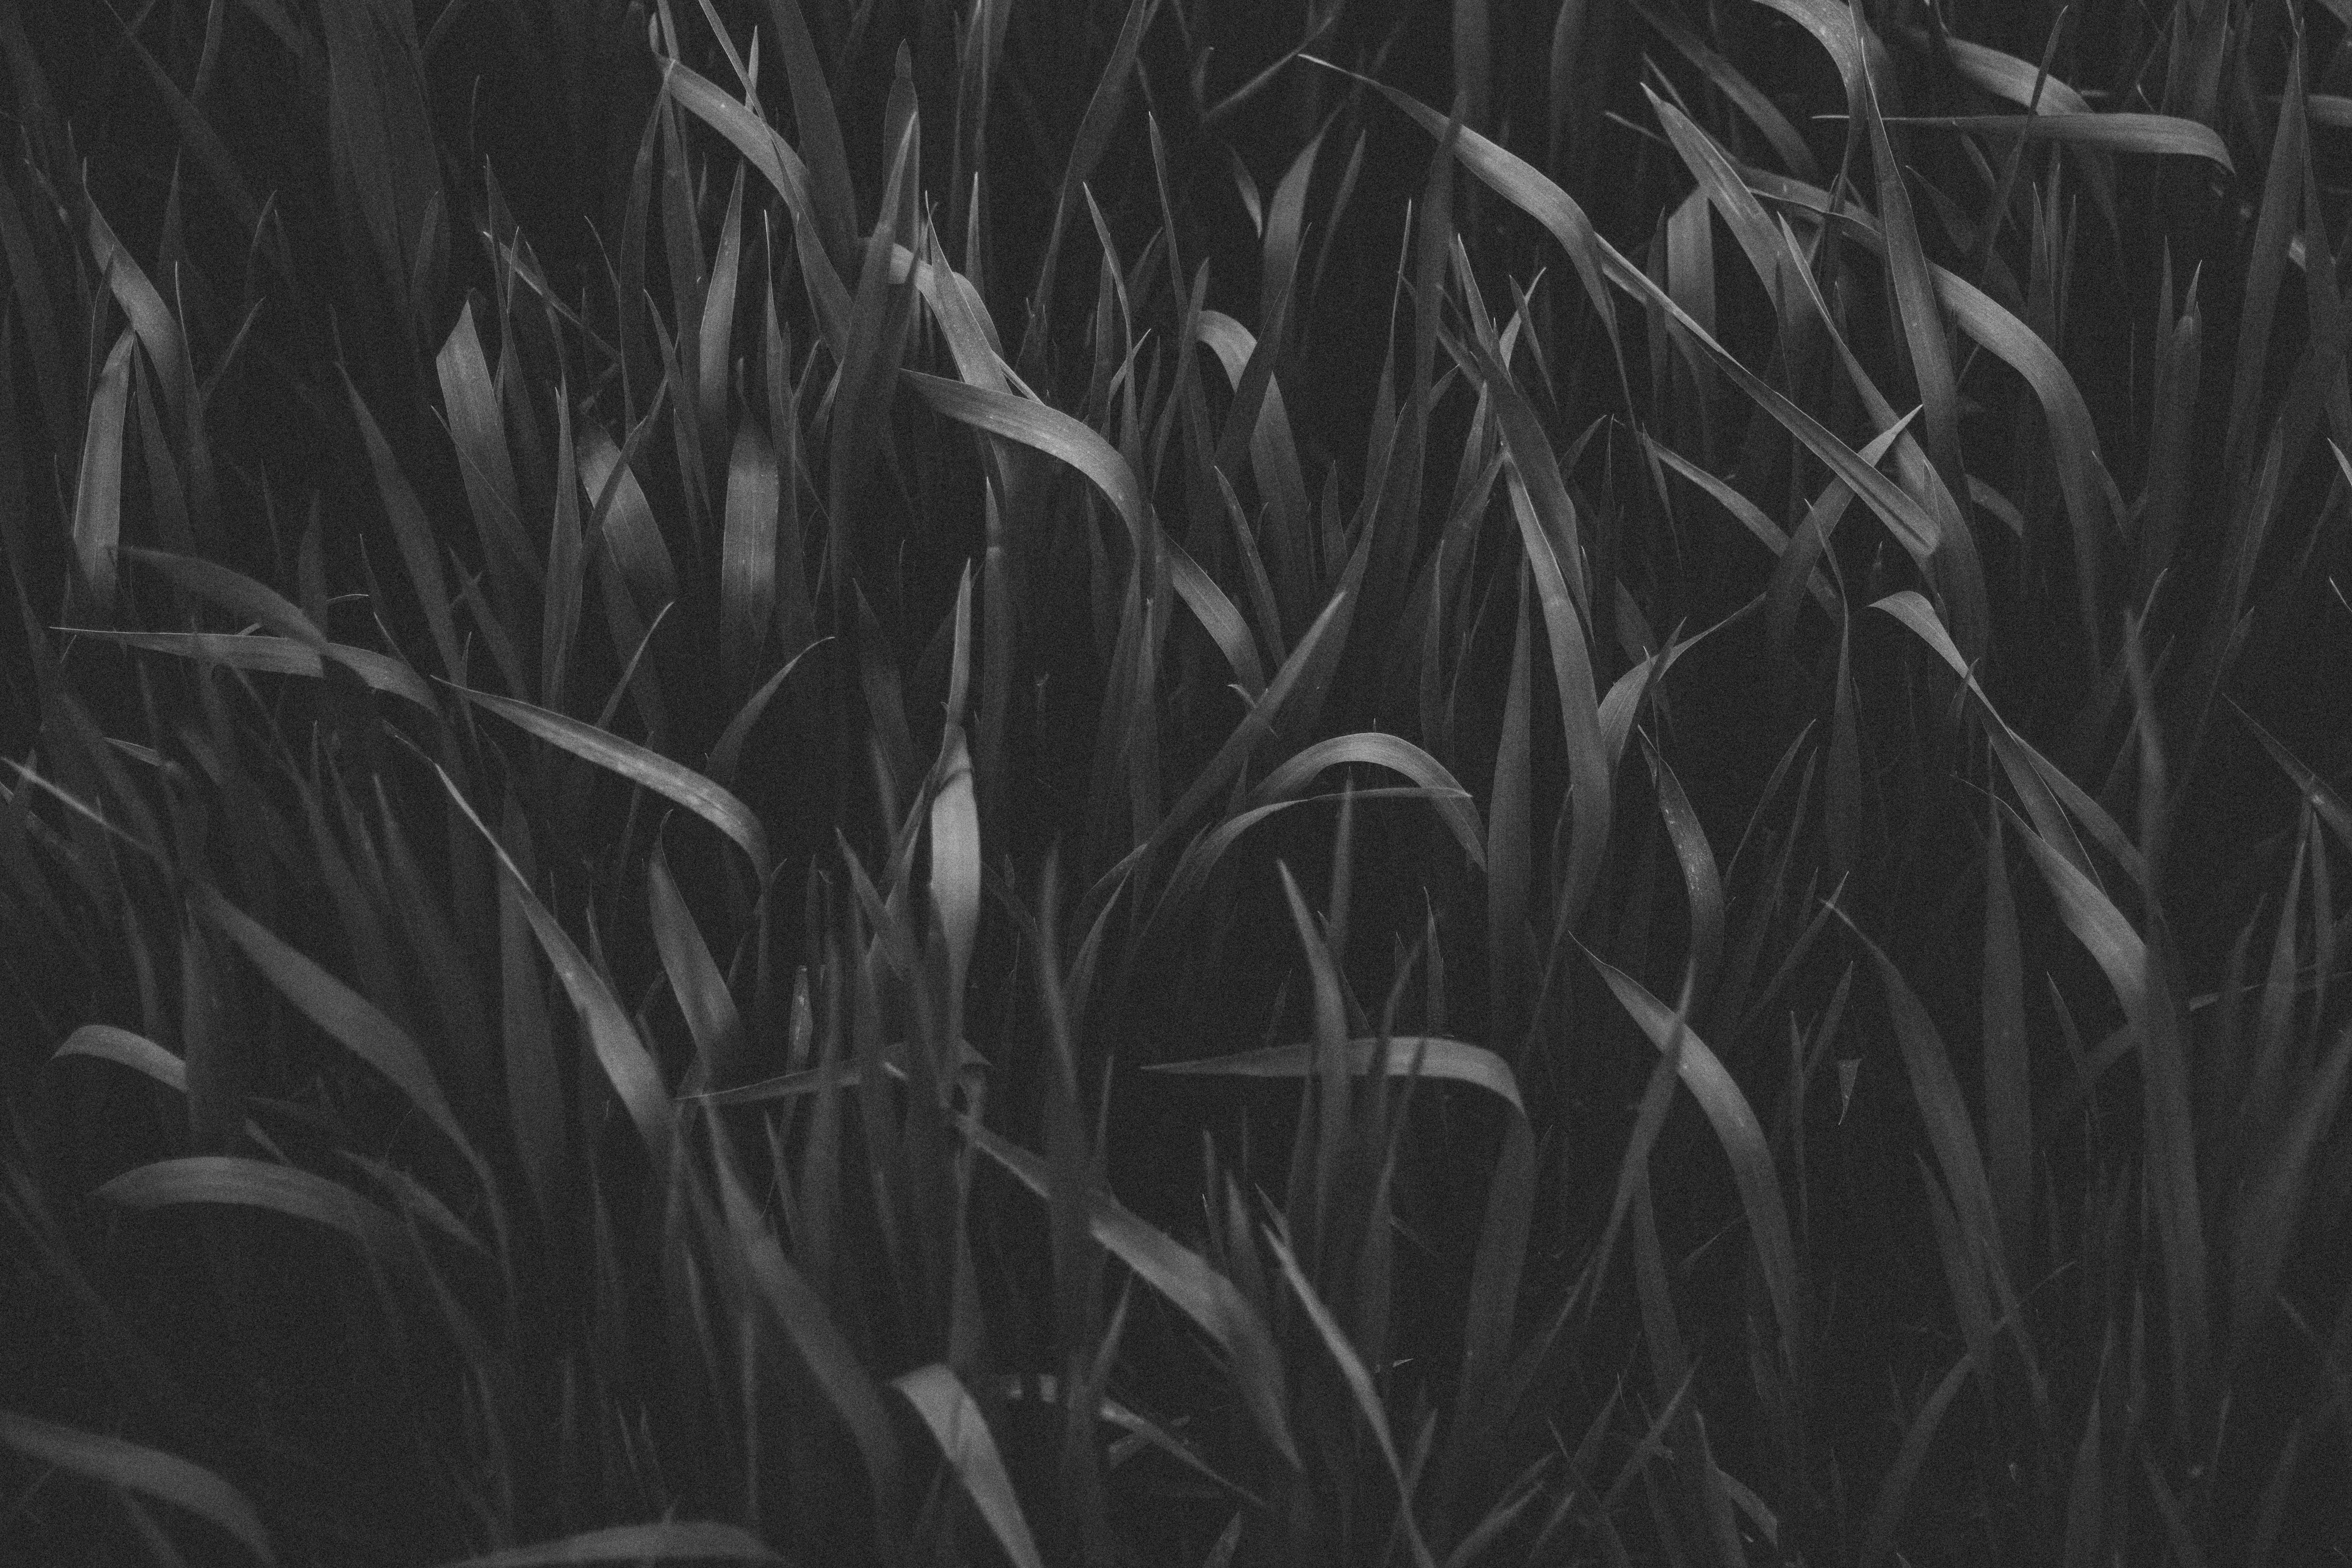 Grayscale Photography of Grass